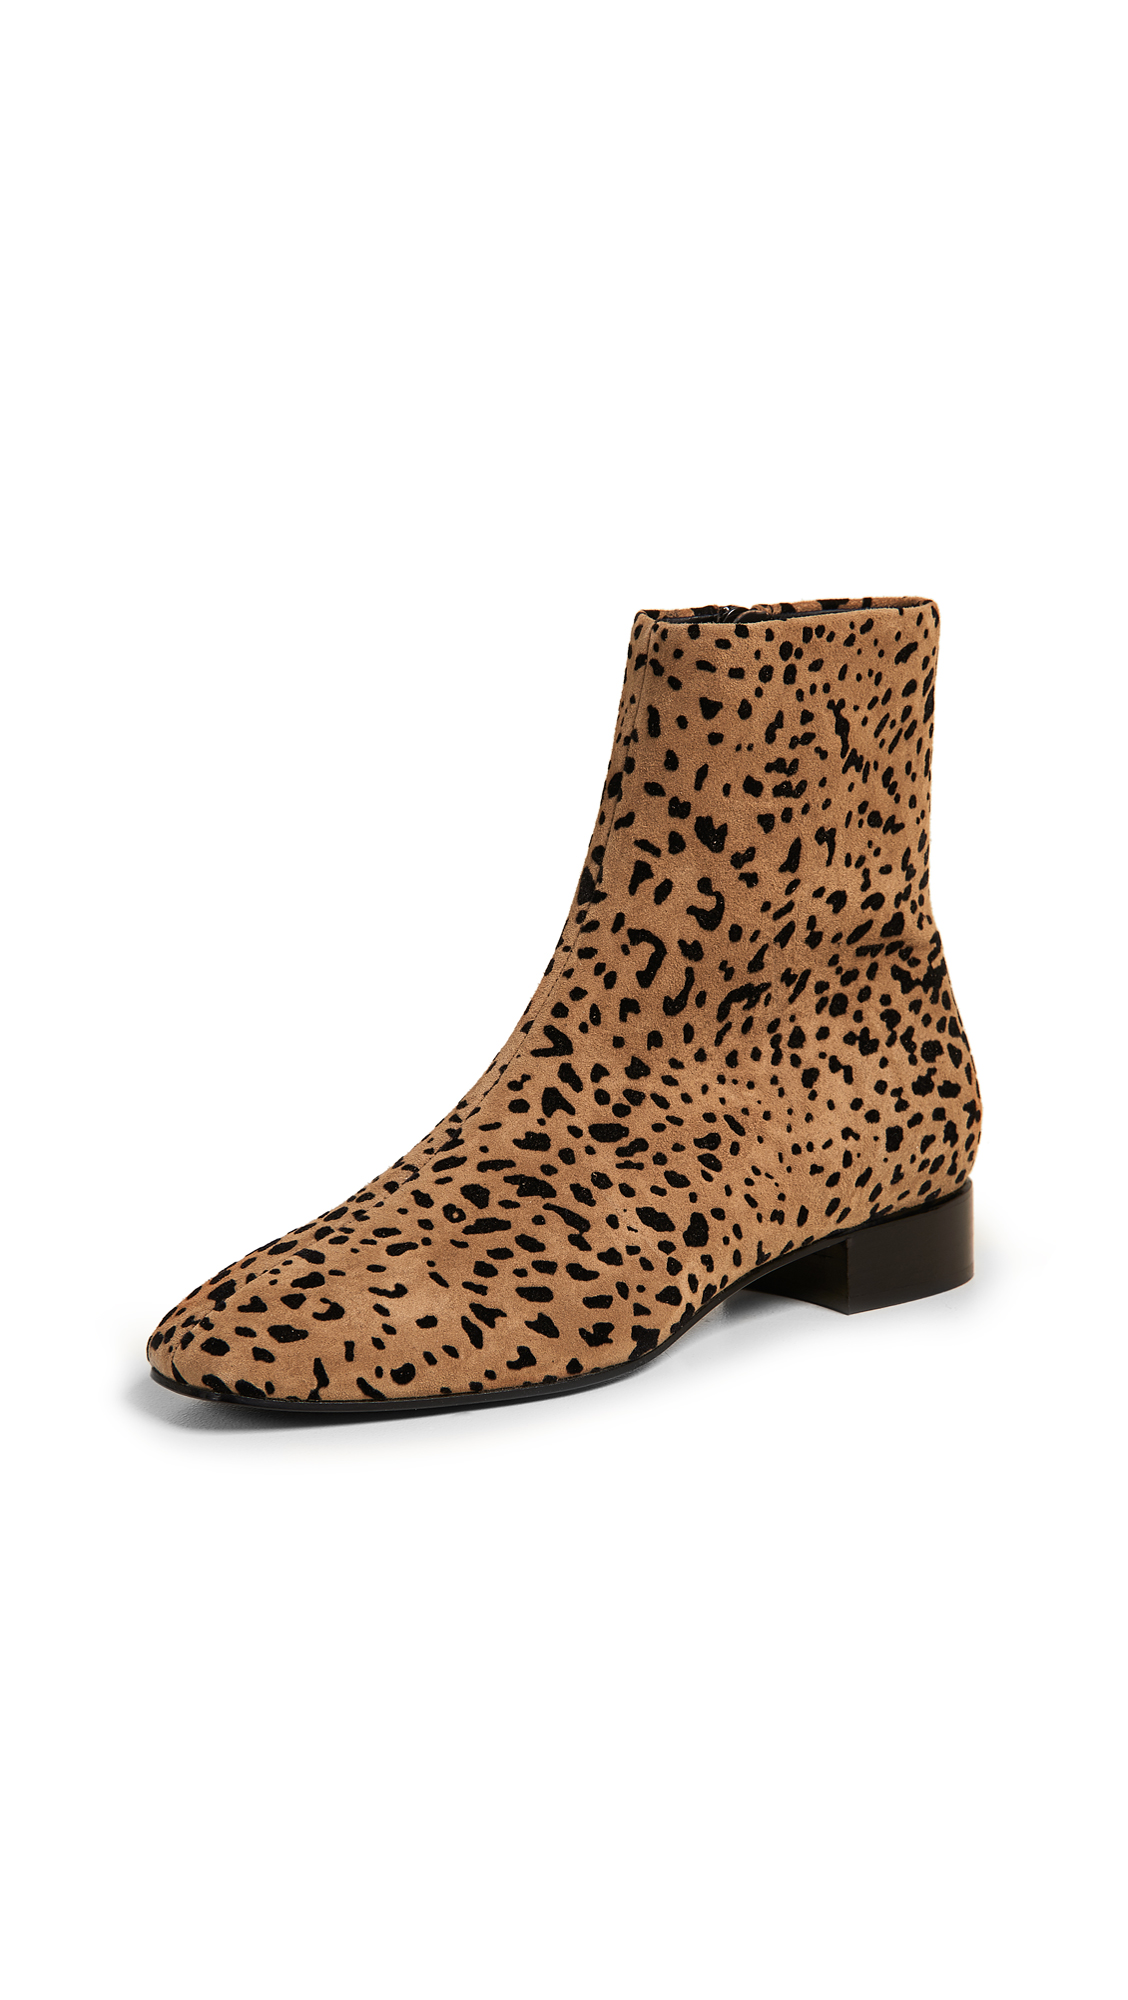 Rag & Bone Aslen Flat Booties - Tan Cheetah